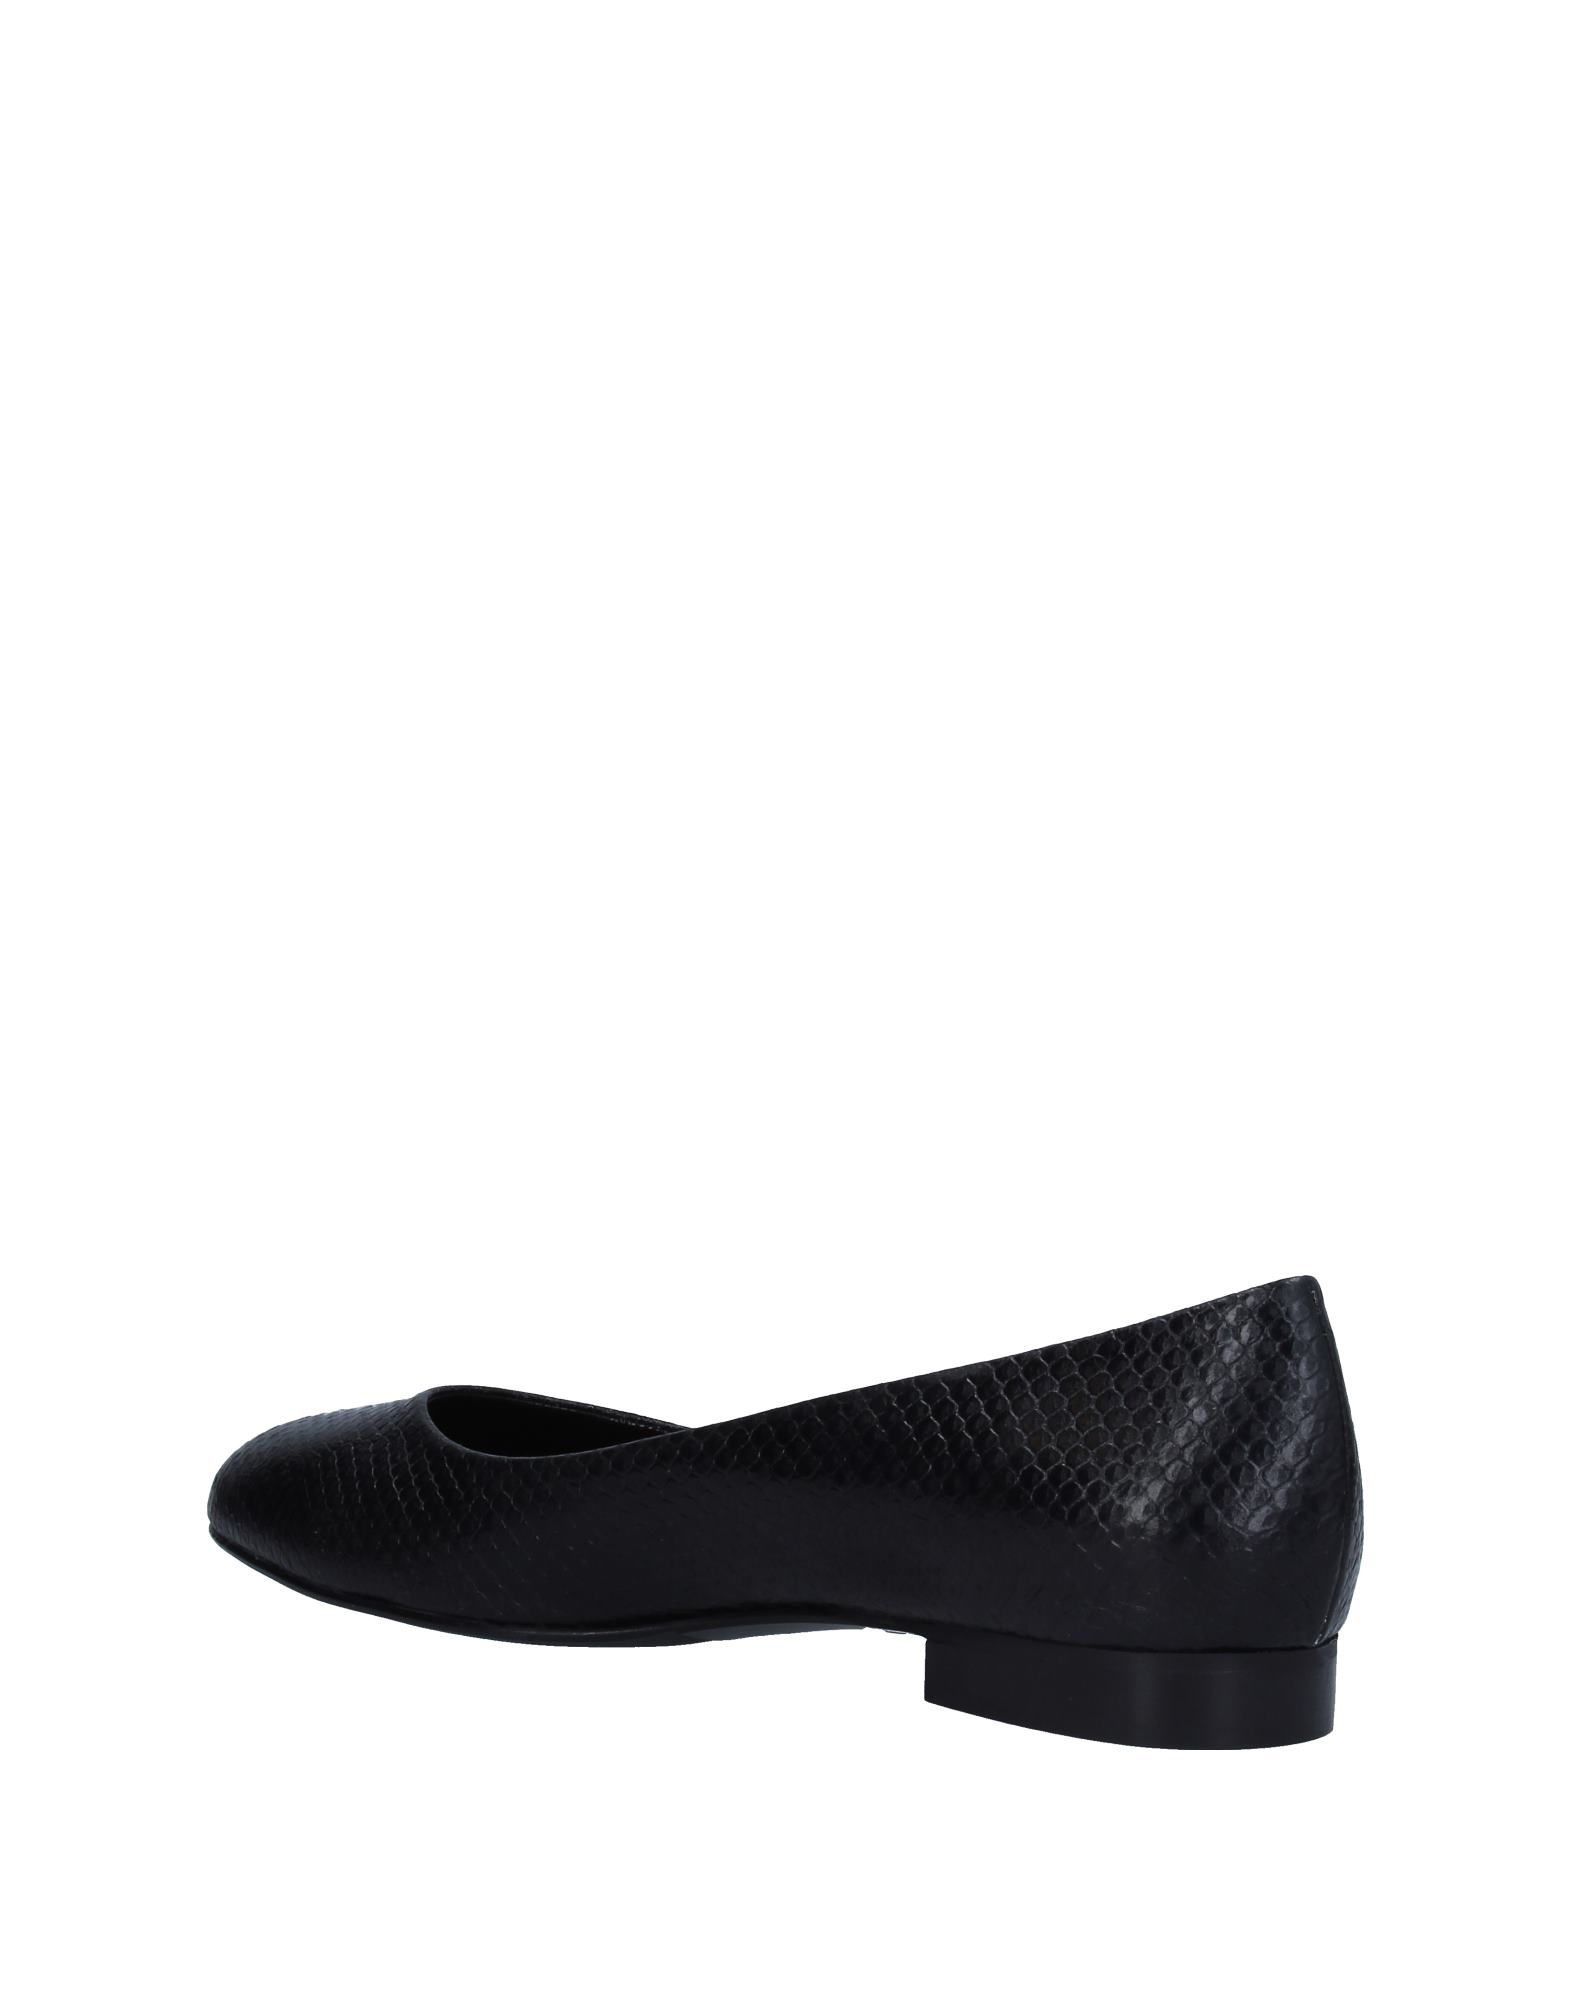 Ballerines Gianni Marra Femme - Ballerines Gianni Marra sur